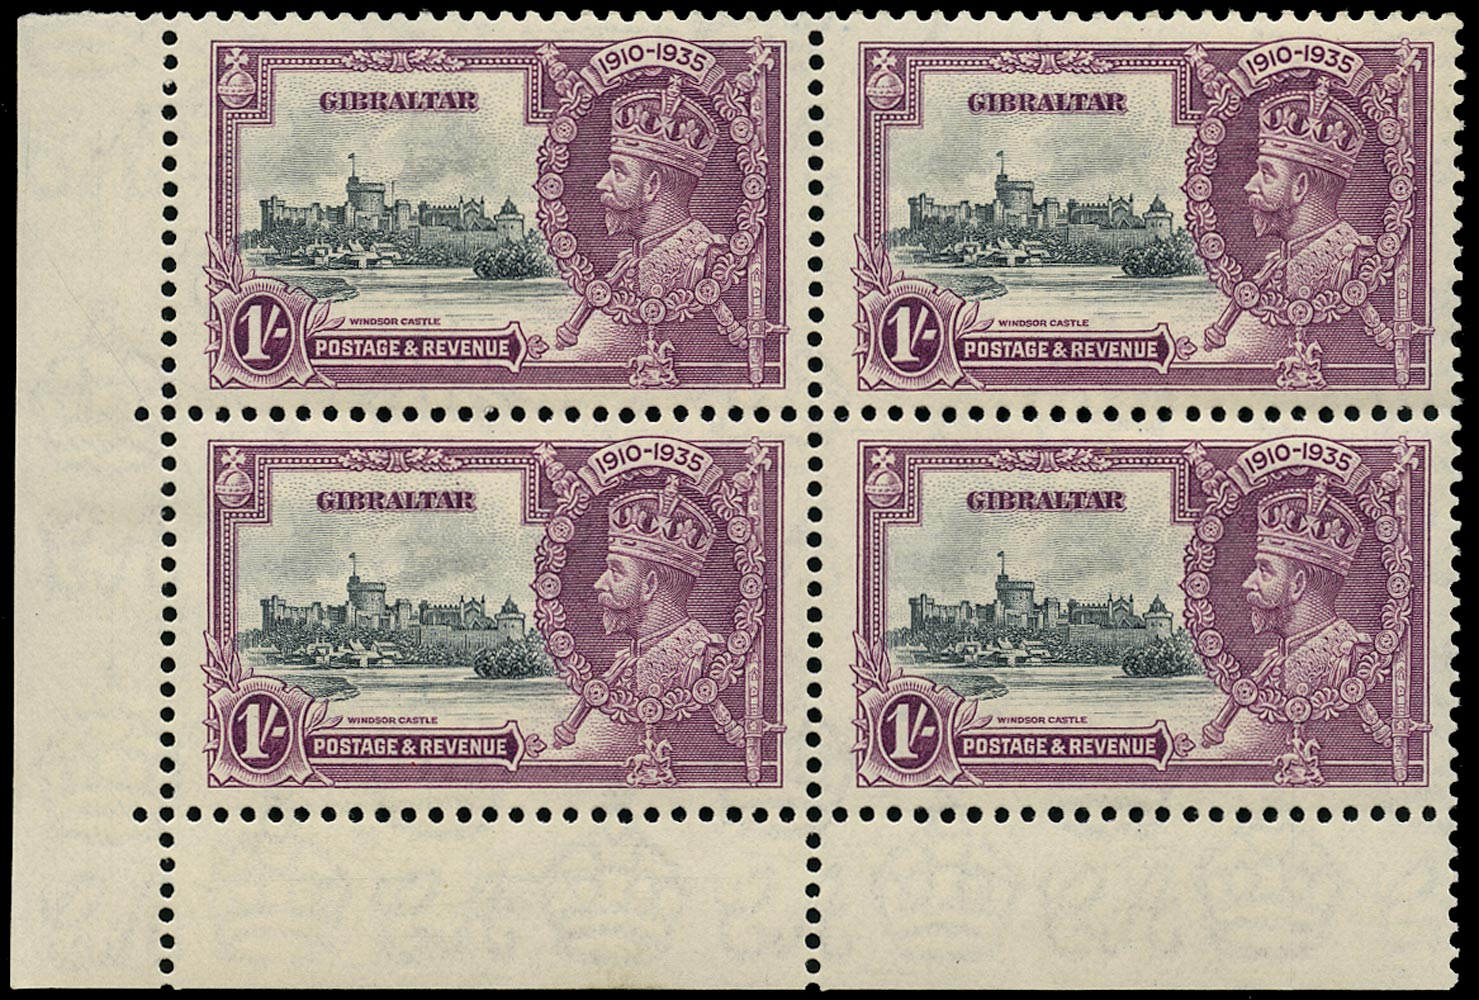 GIBRALTAR 1935  SG117a Mint unmounted Silver Jubilee 1s slate and purple variety Extra flagstaff